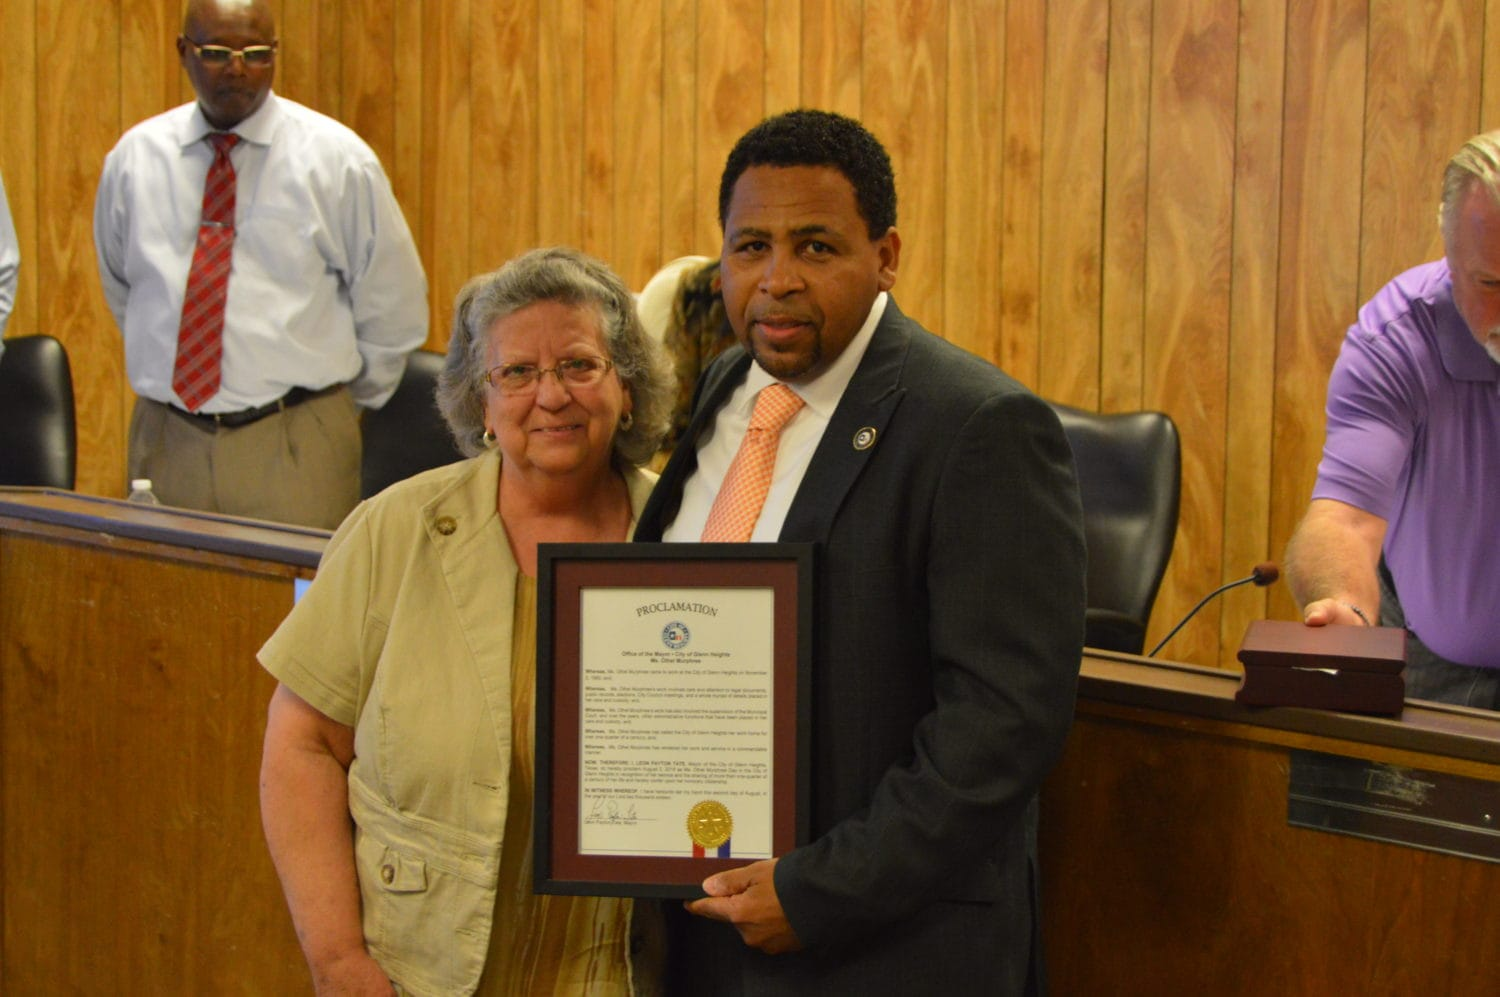 Glenn Heights Honors City Secretary Othel Murphree For 25 Years Of Service